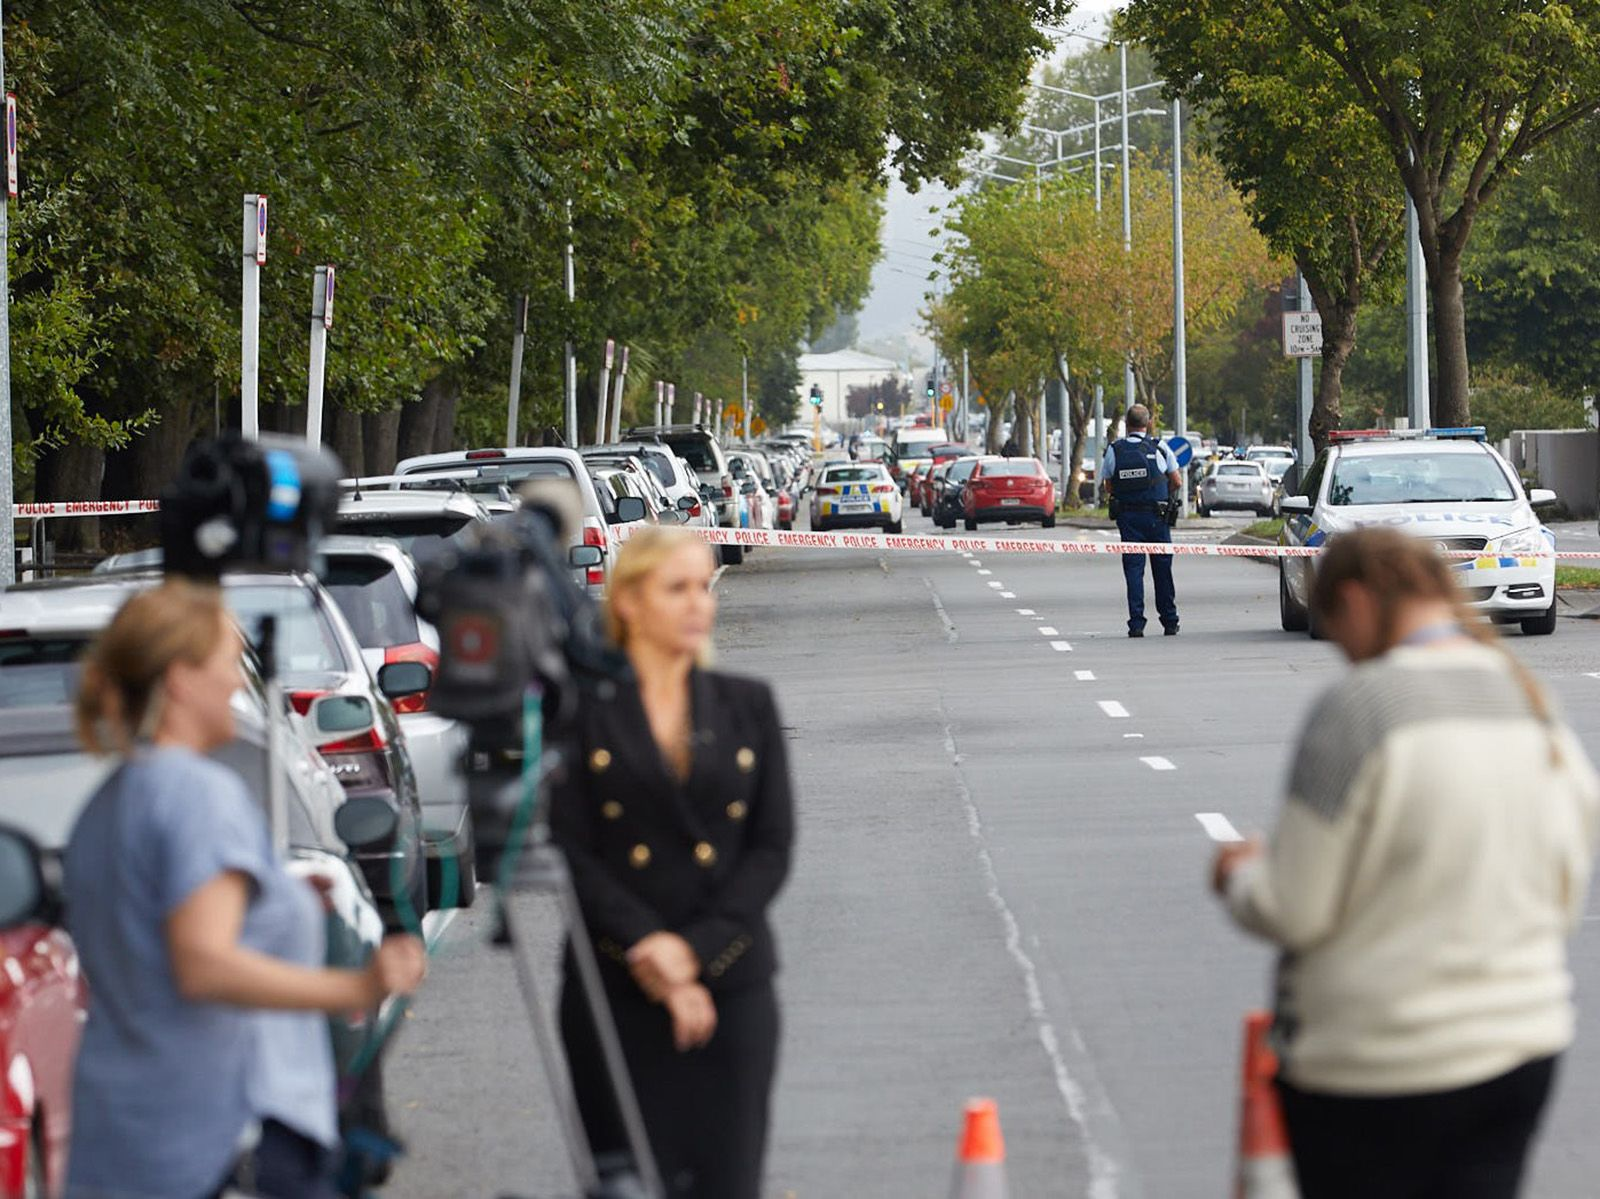 Terror attack at New Zealand mosques